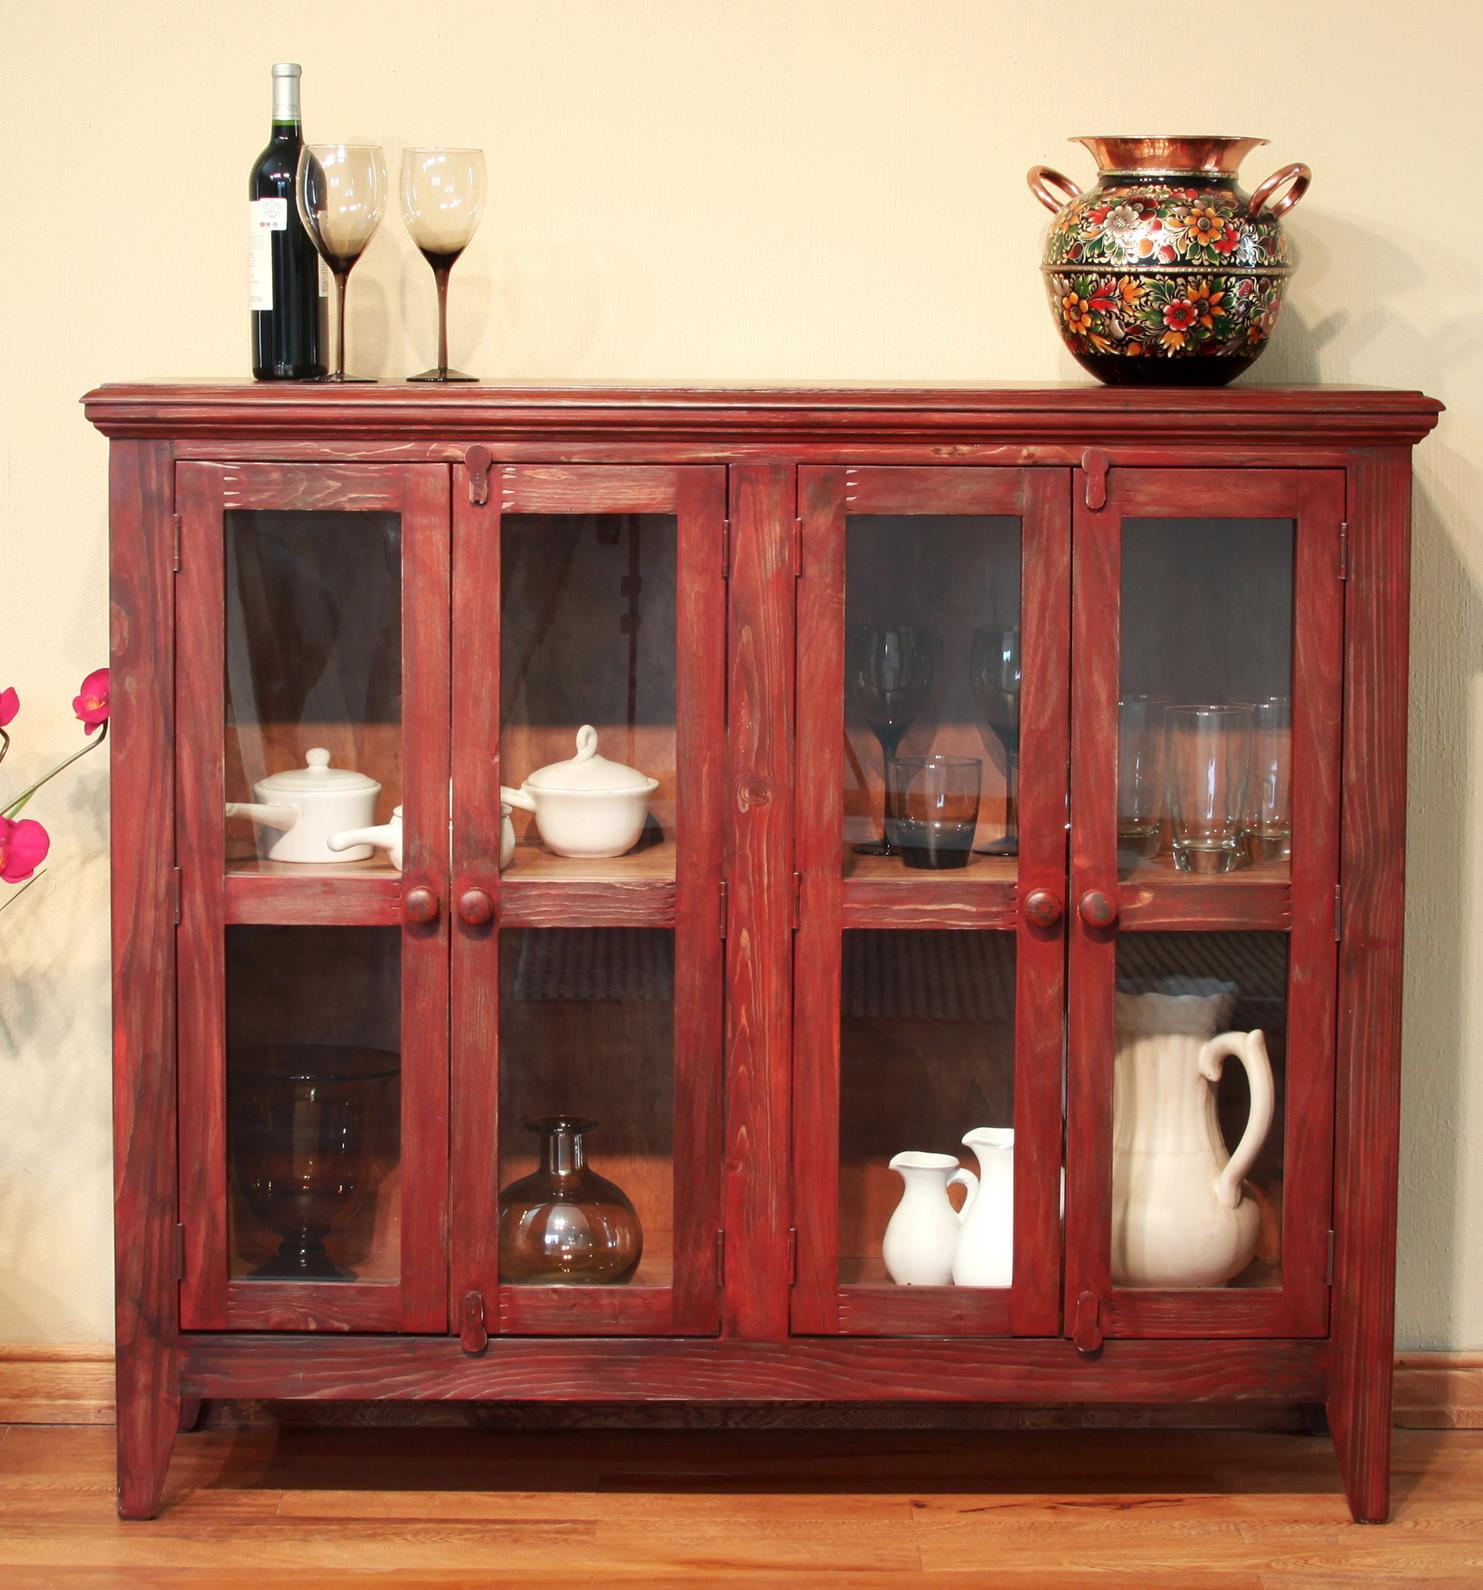 International Furniture Direct 900 Antique Console with 4 Doors - Item Number: IFD967CONS-R